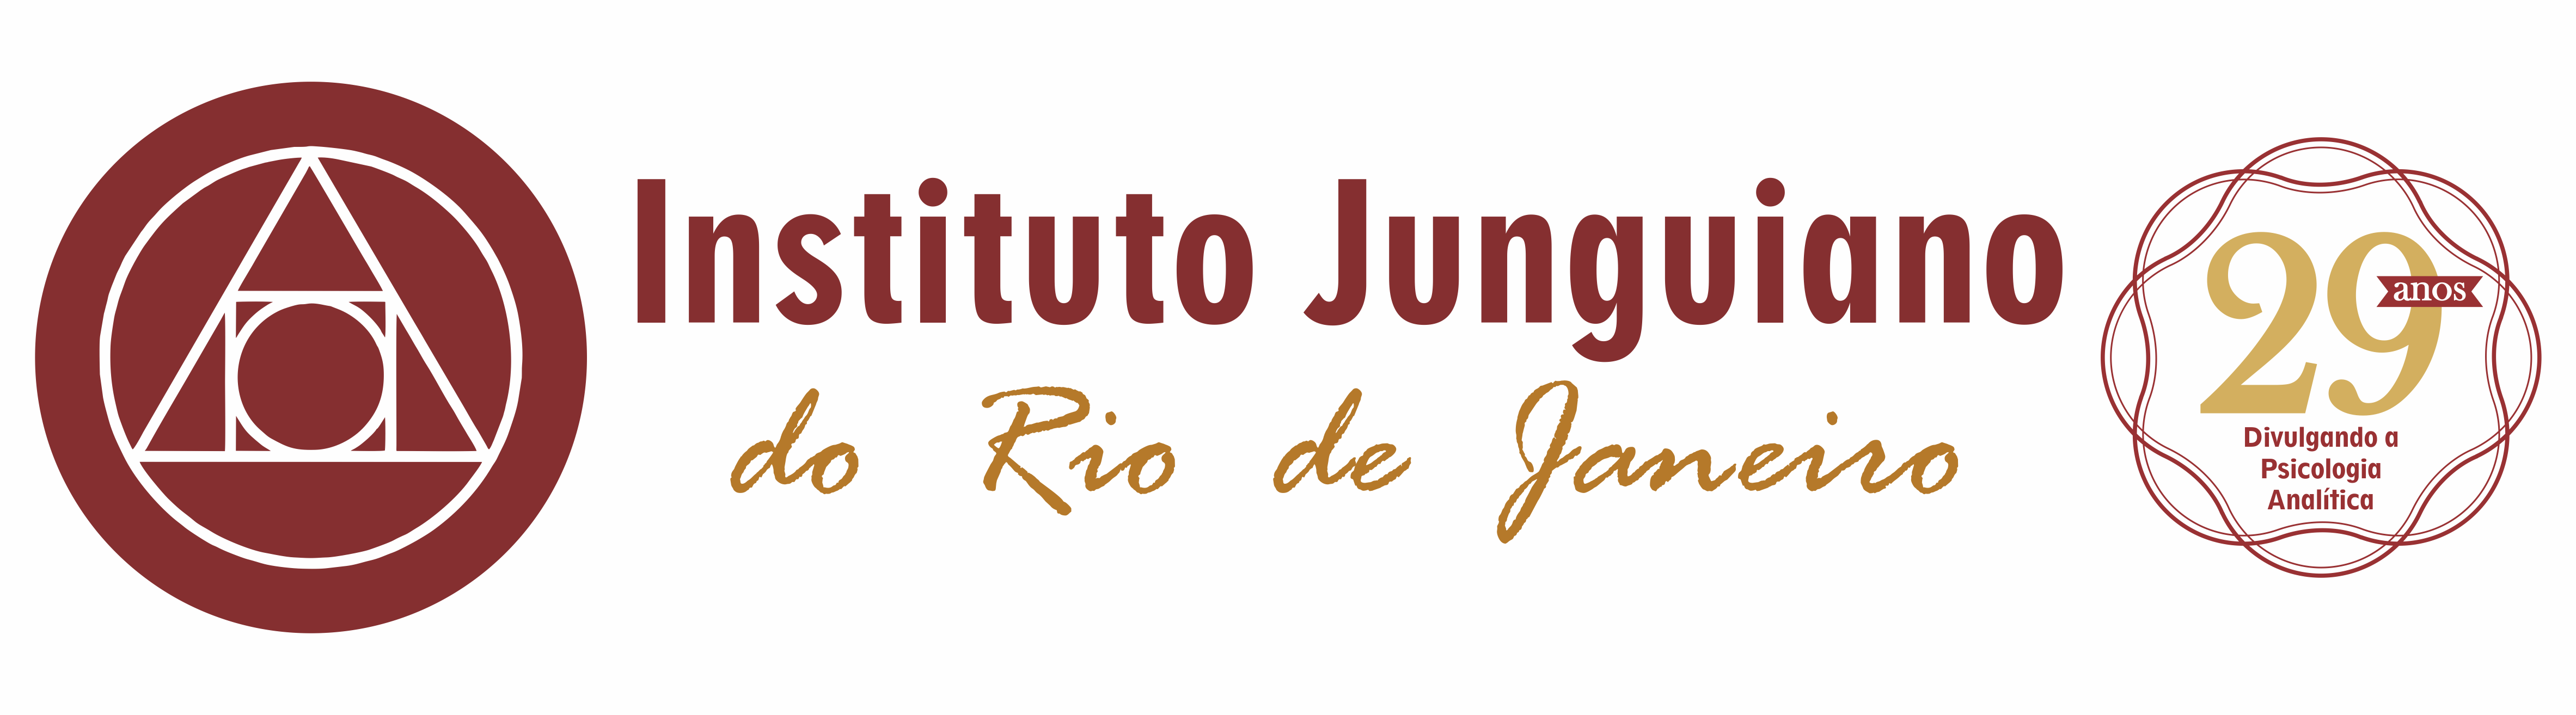 Instituto Junguiano RJ